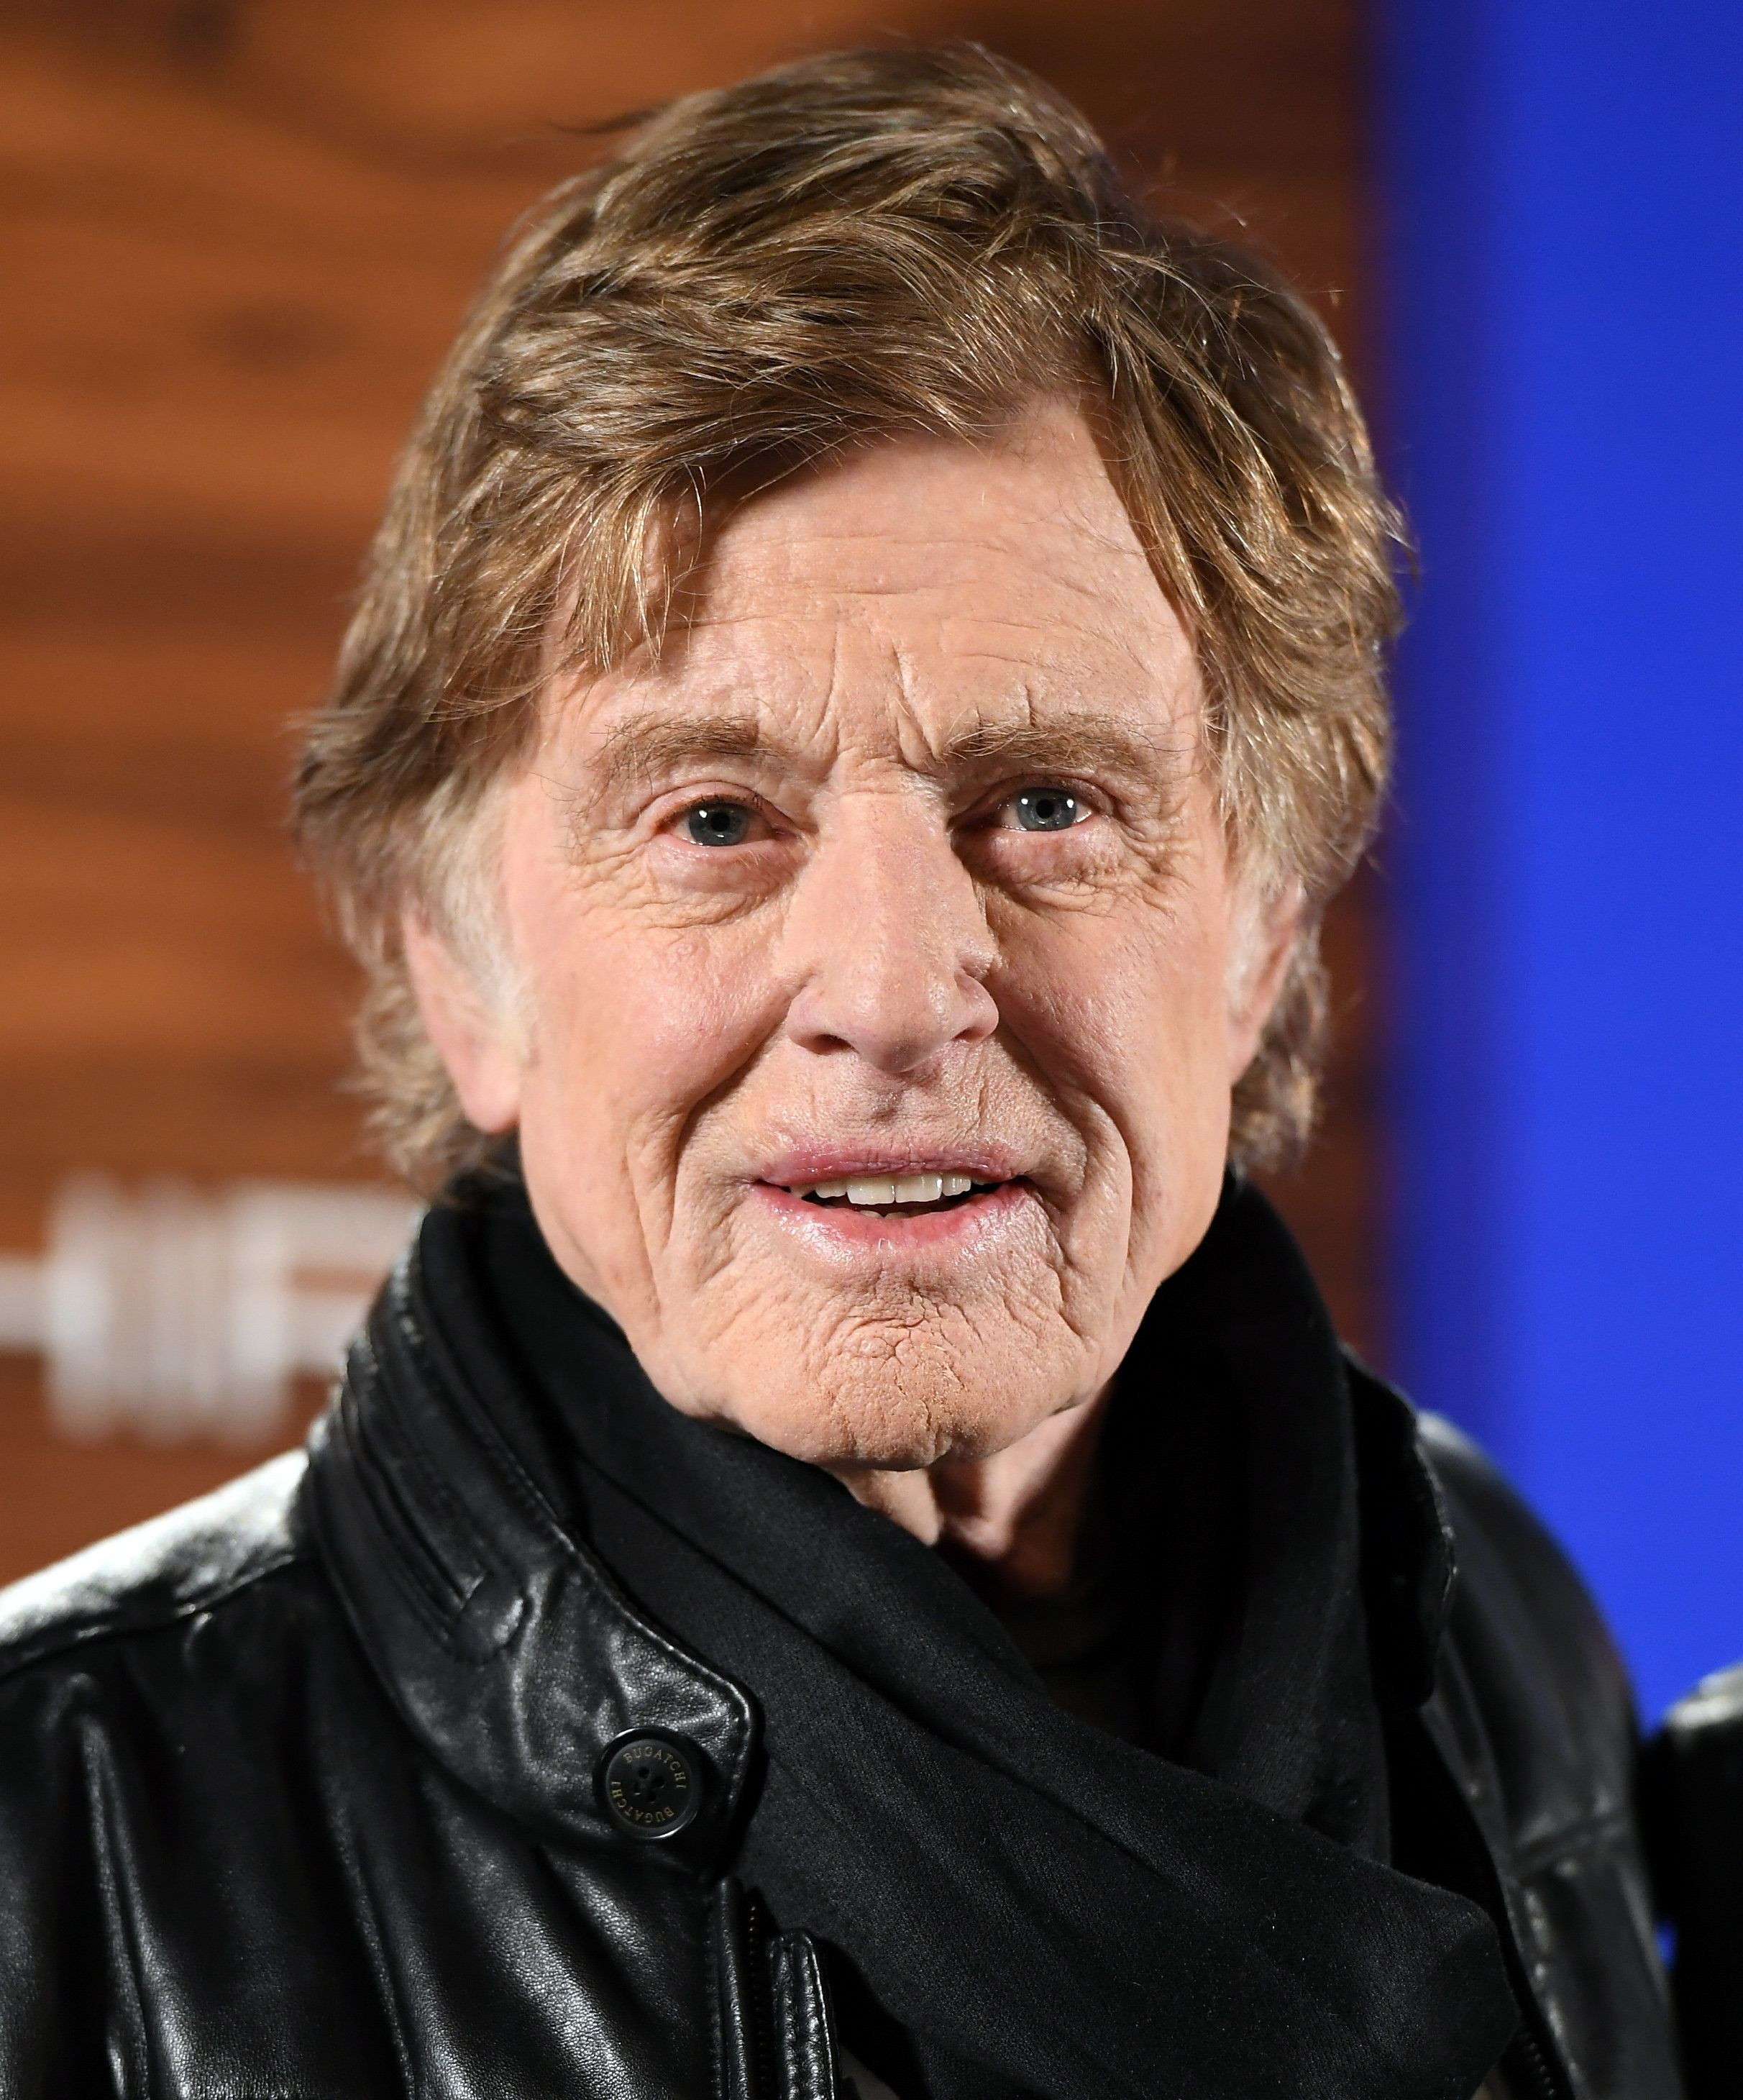 Founder of the Sundance Institute, Robert Redford, attends the opening day press conference to kick-off the 2018 Sundance Film Festival in Park City, Utah on January 18, 2018. (Photo by ANGELA WEISS / AFP)        (Photo credit should read ANGELA WEISS/AFP/Getty Images)